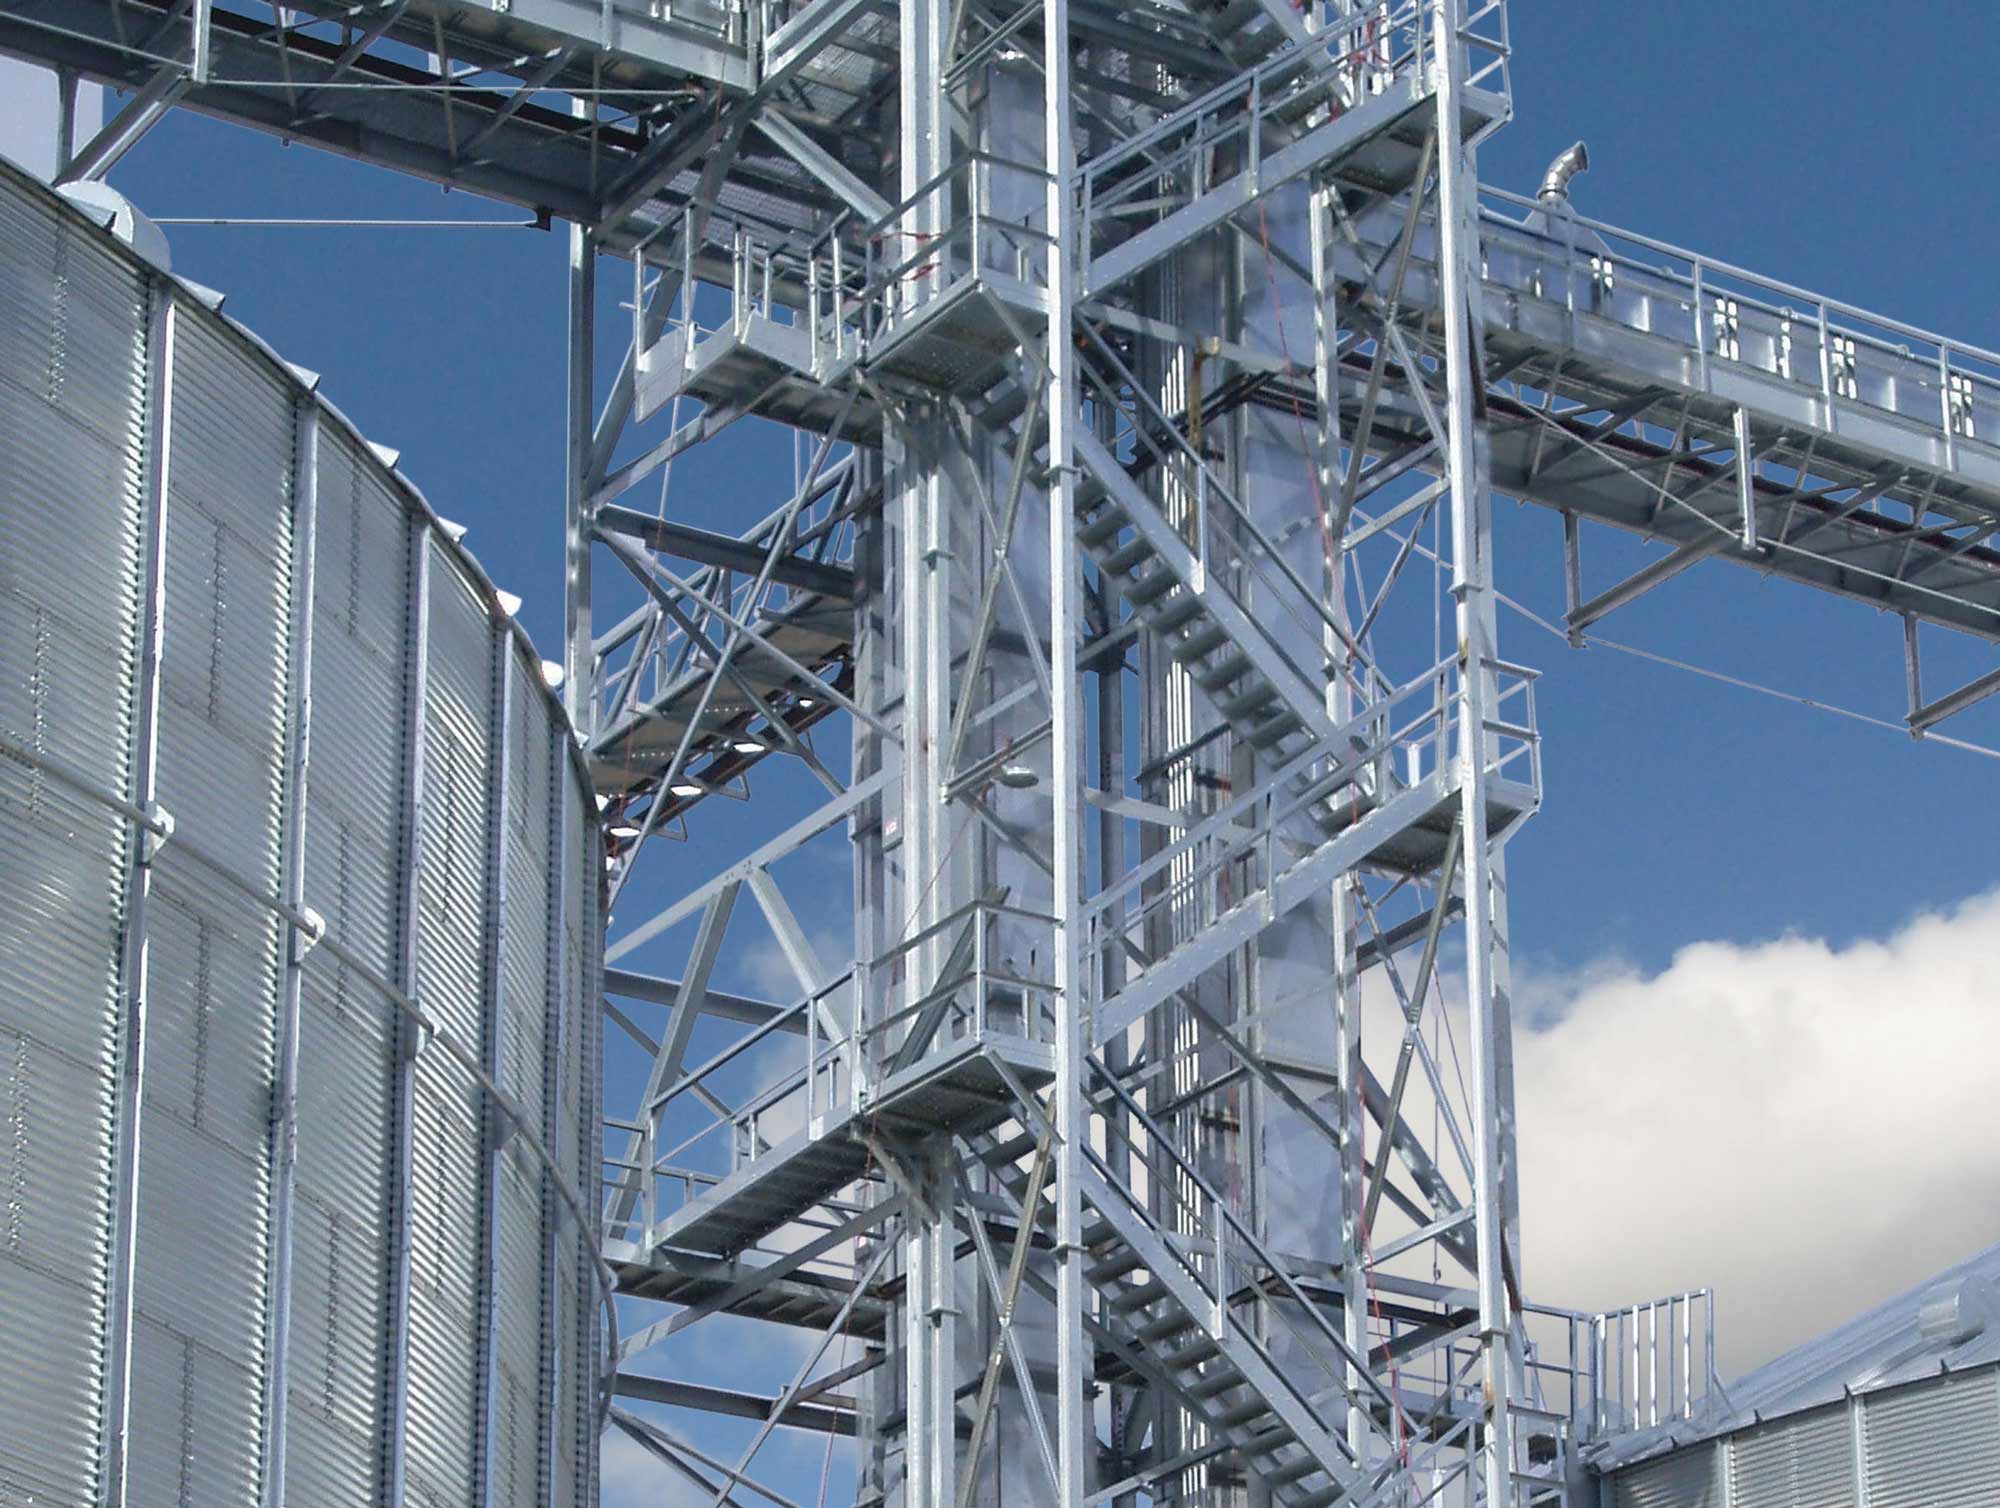 view of SCAFCO tower and catwalk next to a grain bin